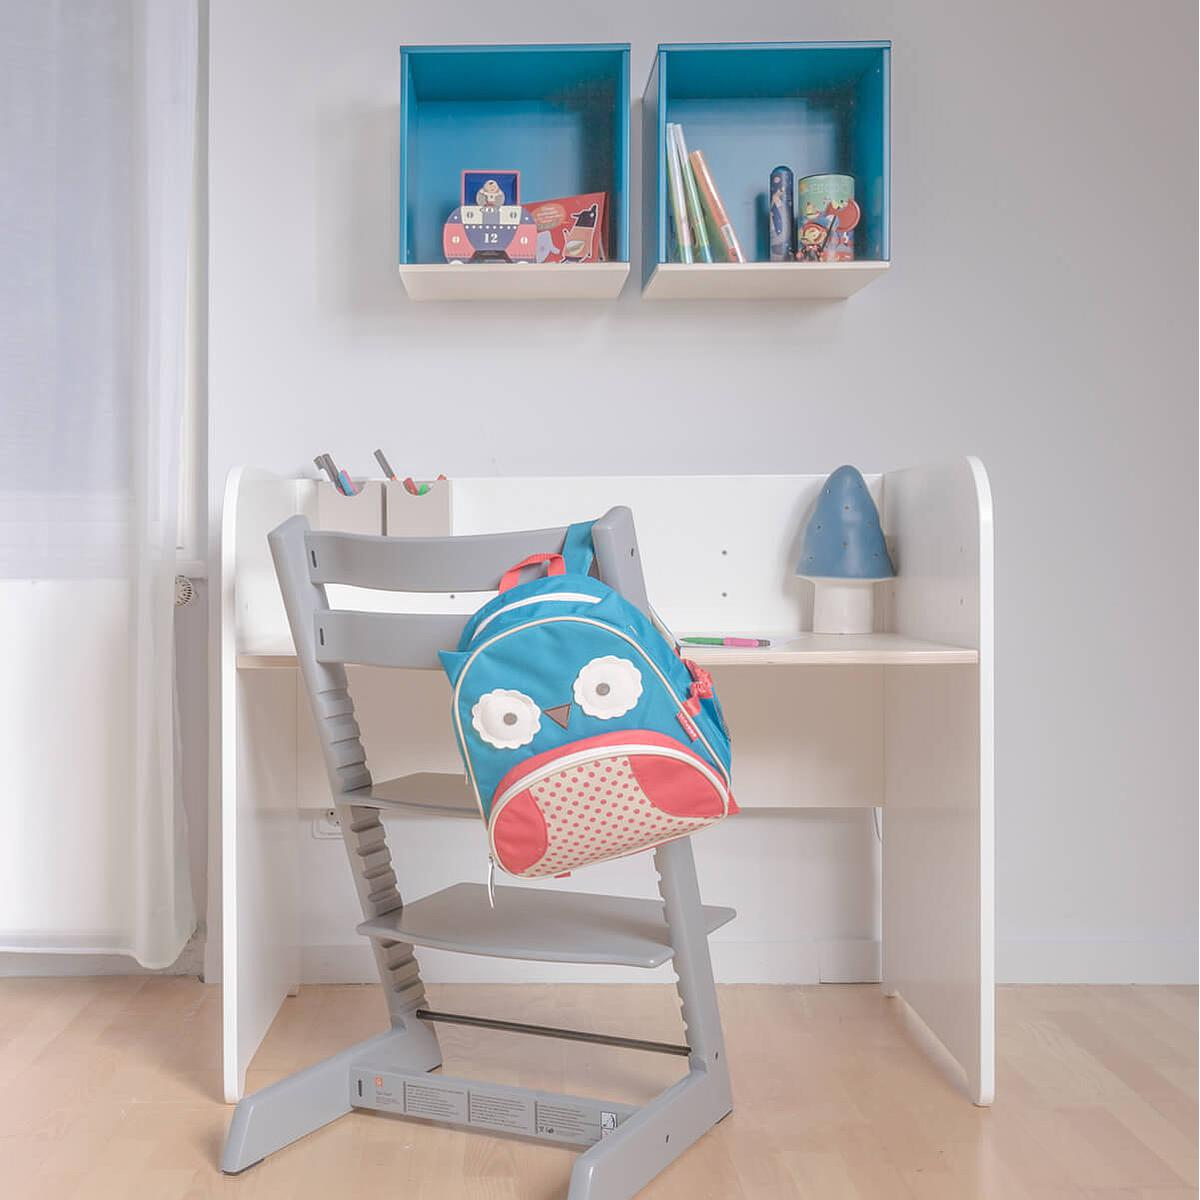 Cube mural COLORFLEX Abitare Kids white wash